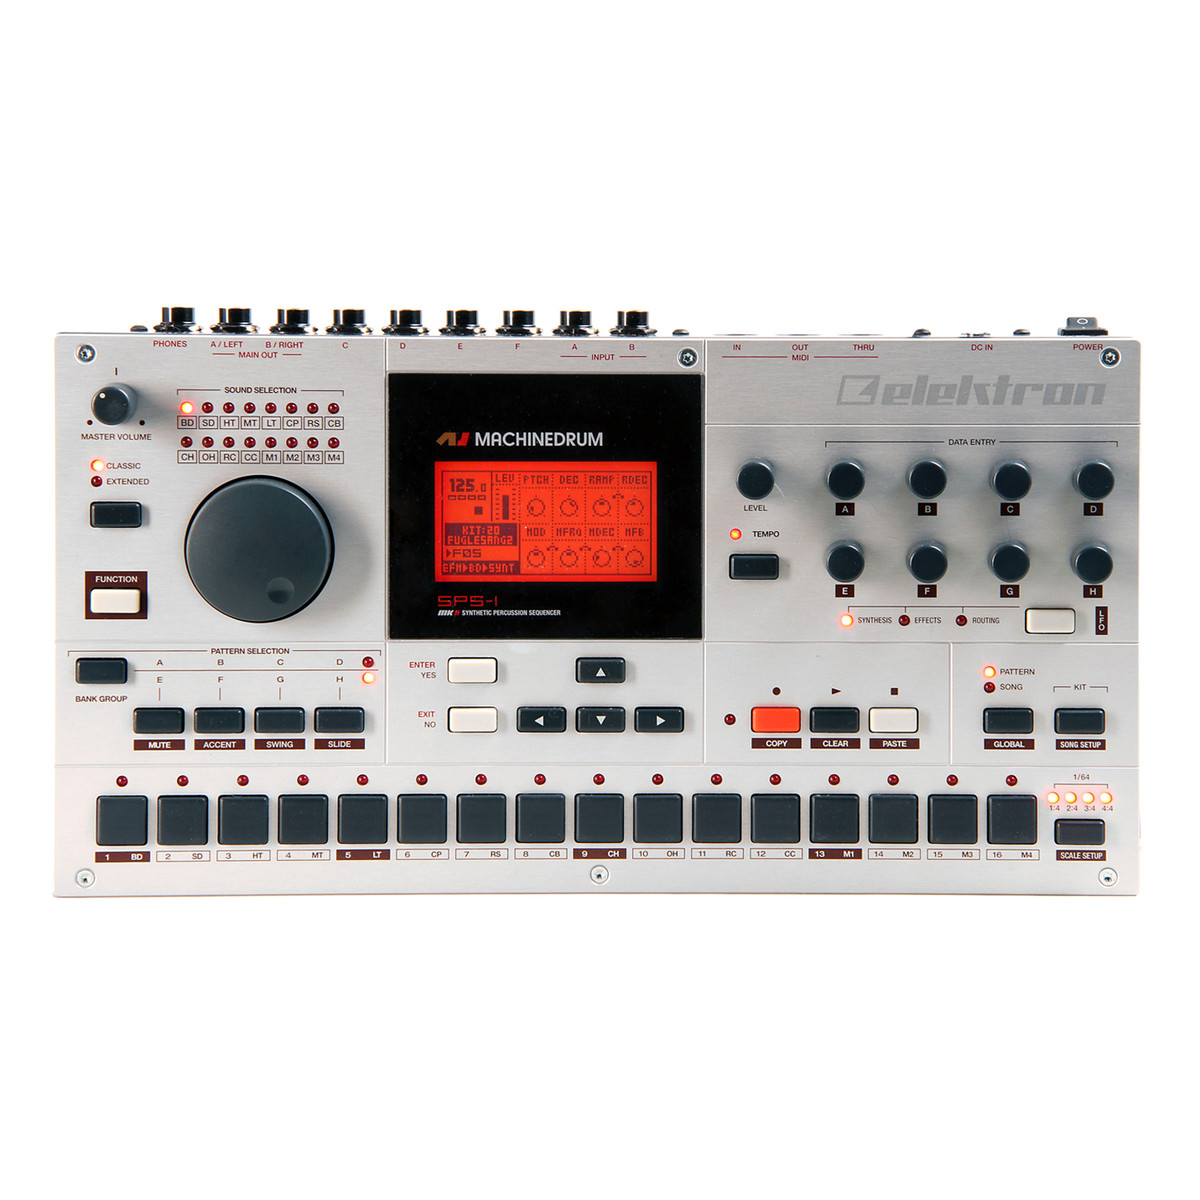 https://medias.audiofanzine.com/images/normal/elektron-machinedrum-sps-1-mkii-3026266.jpg